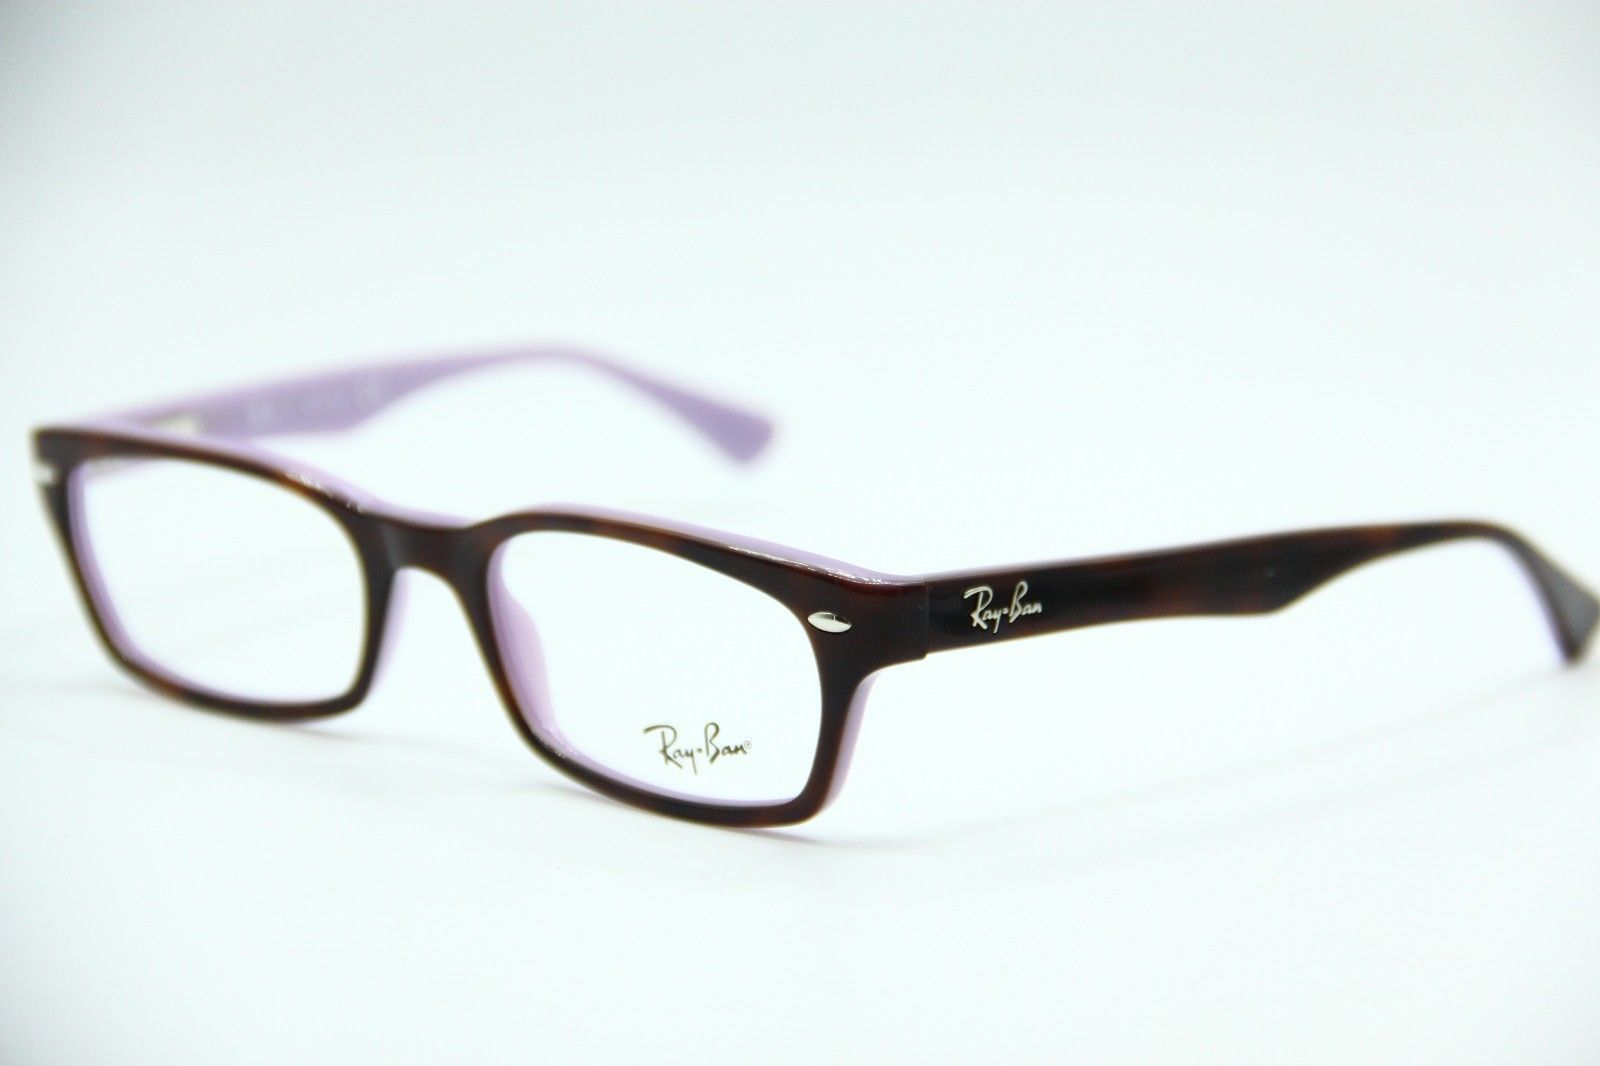 de5b4a6820 New RAY-BAN Rb 5150 5240 Tortoise Eyeglasses and 50 similar items. 57